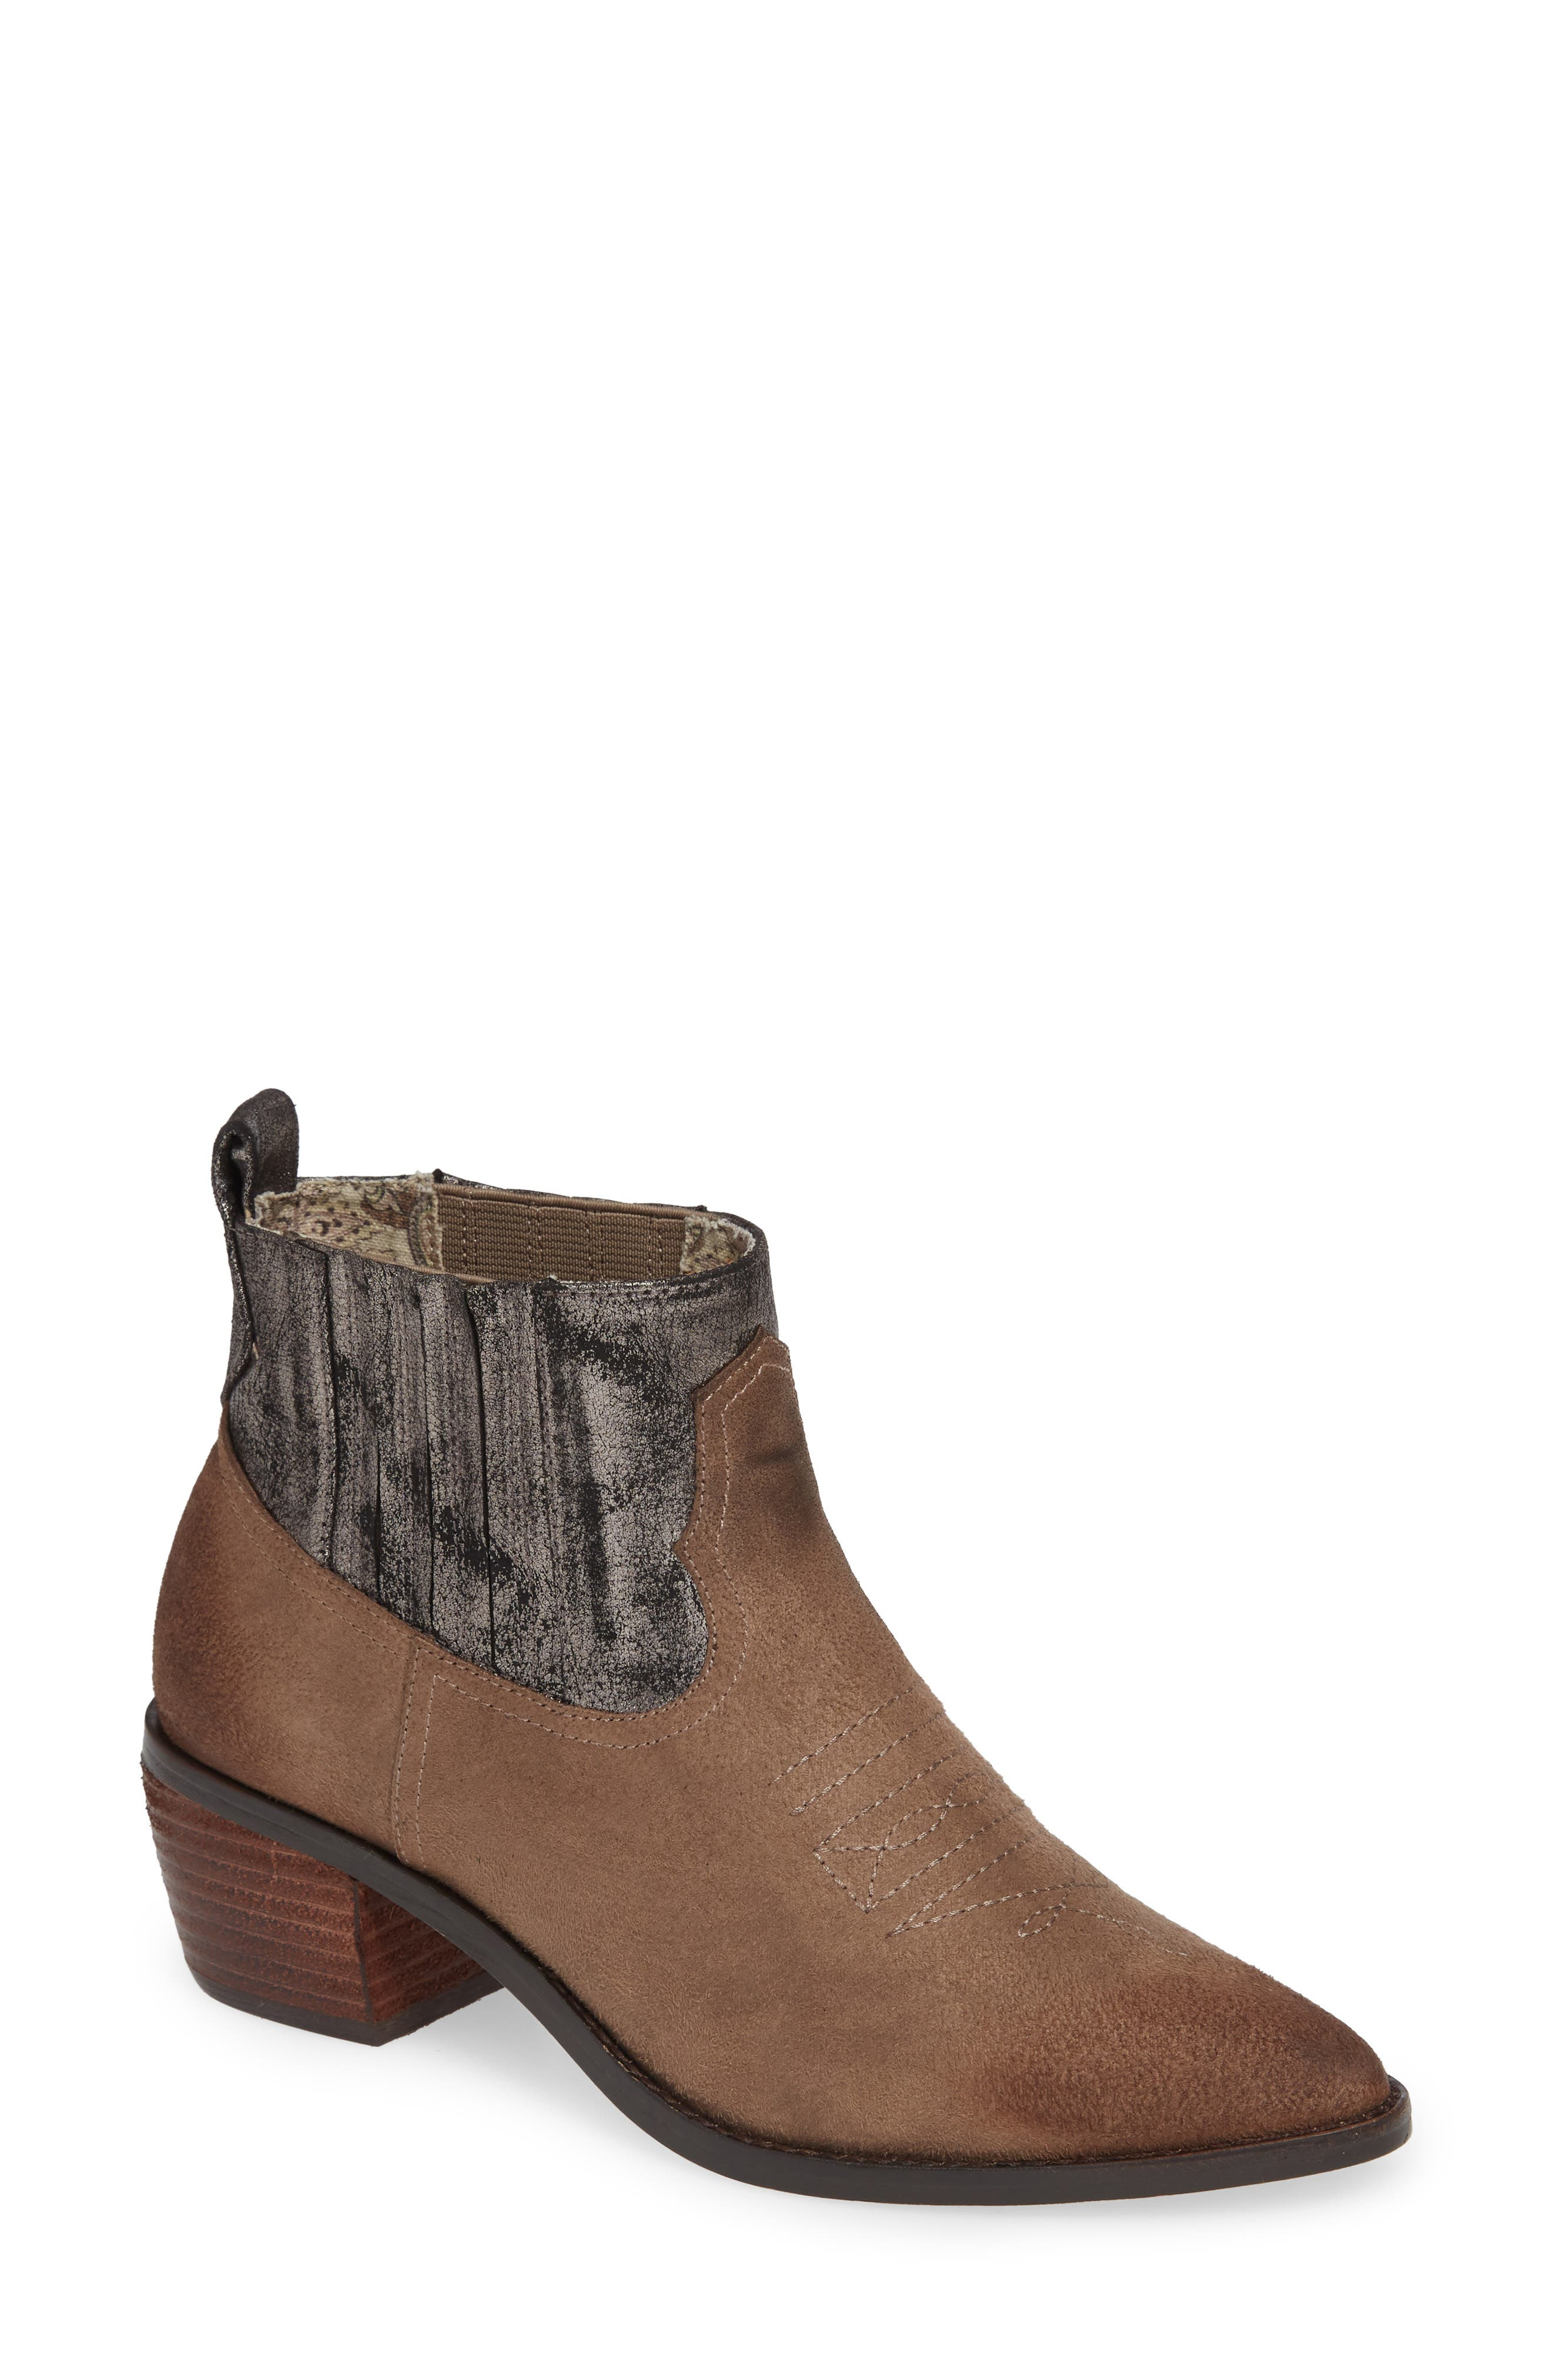 BAND OF GYPSIES Borderline Bootie in Taupe Faux Suede